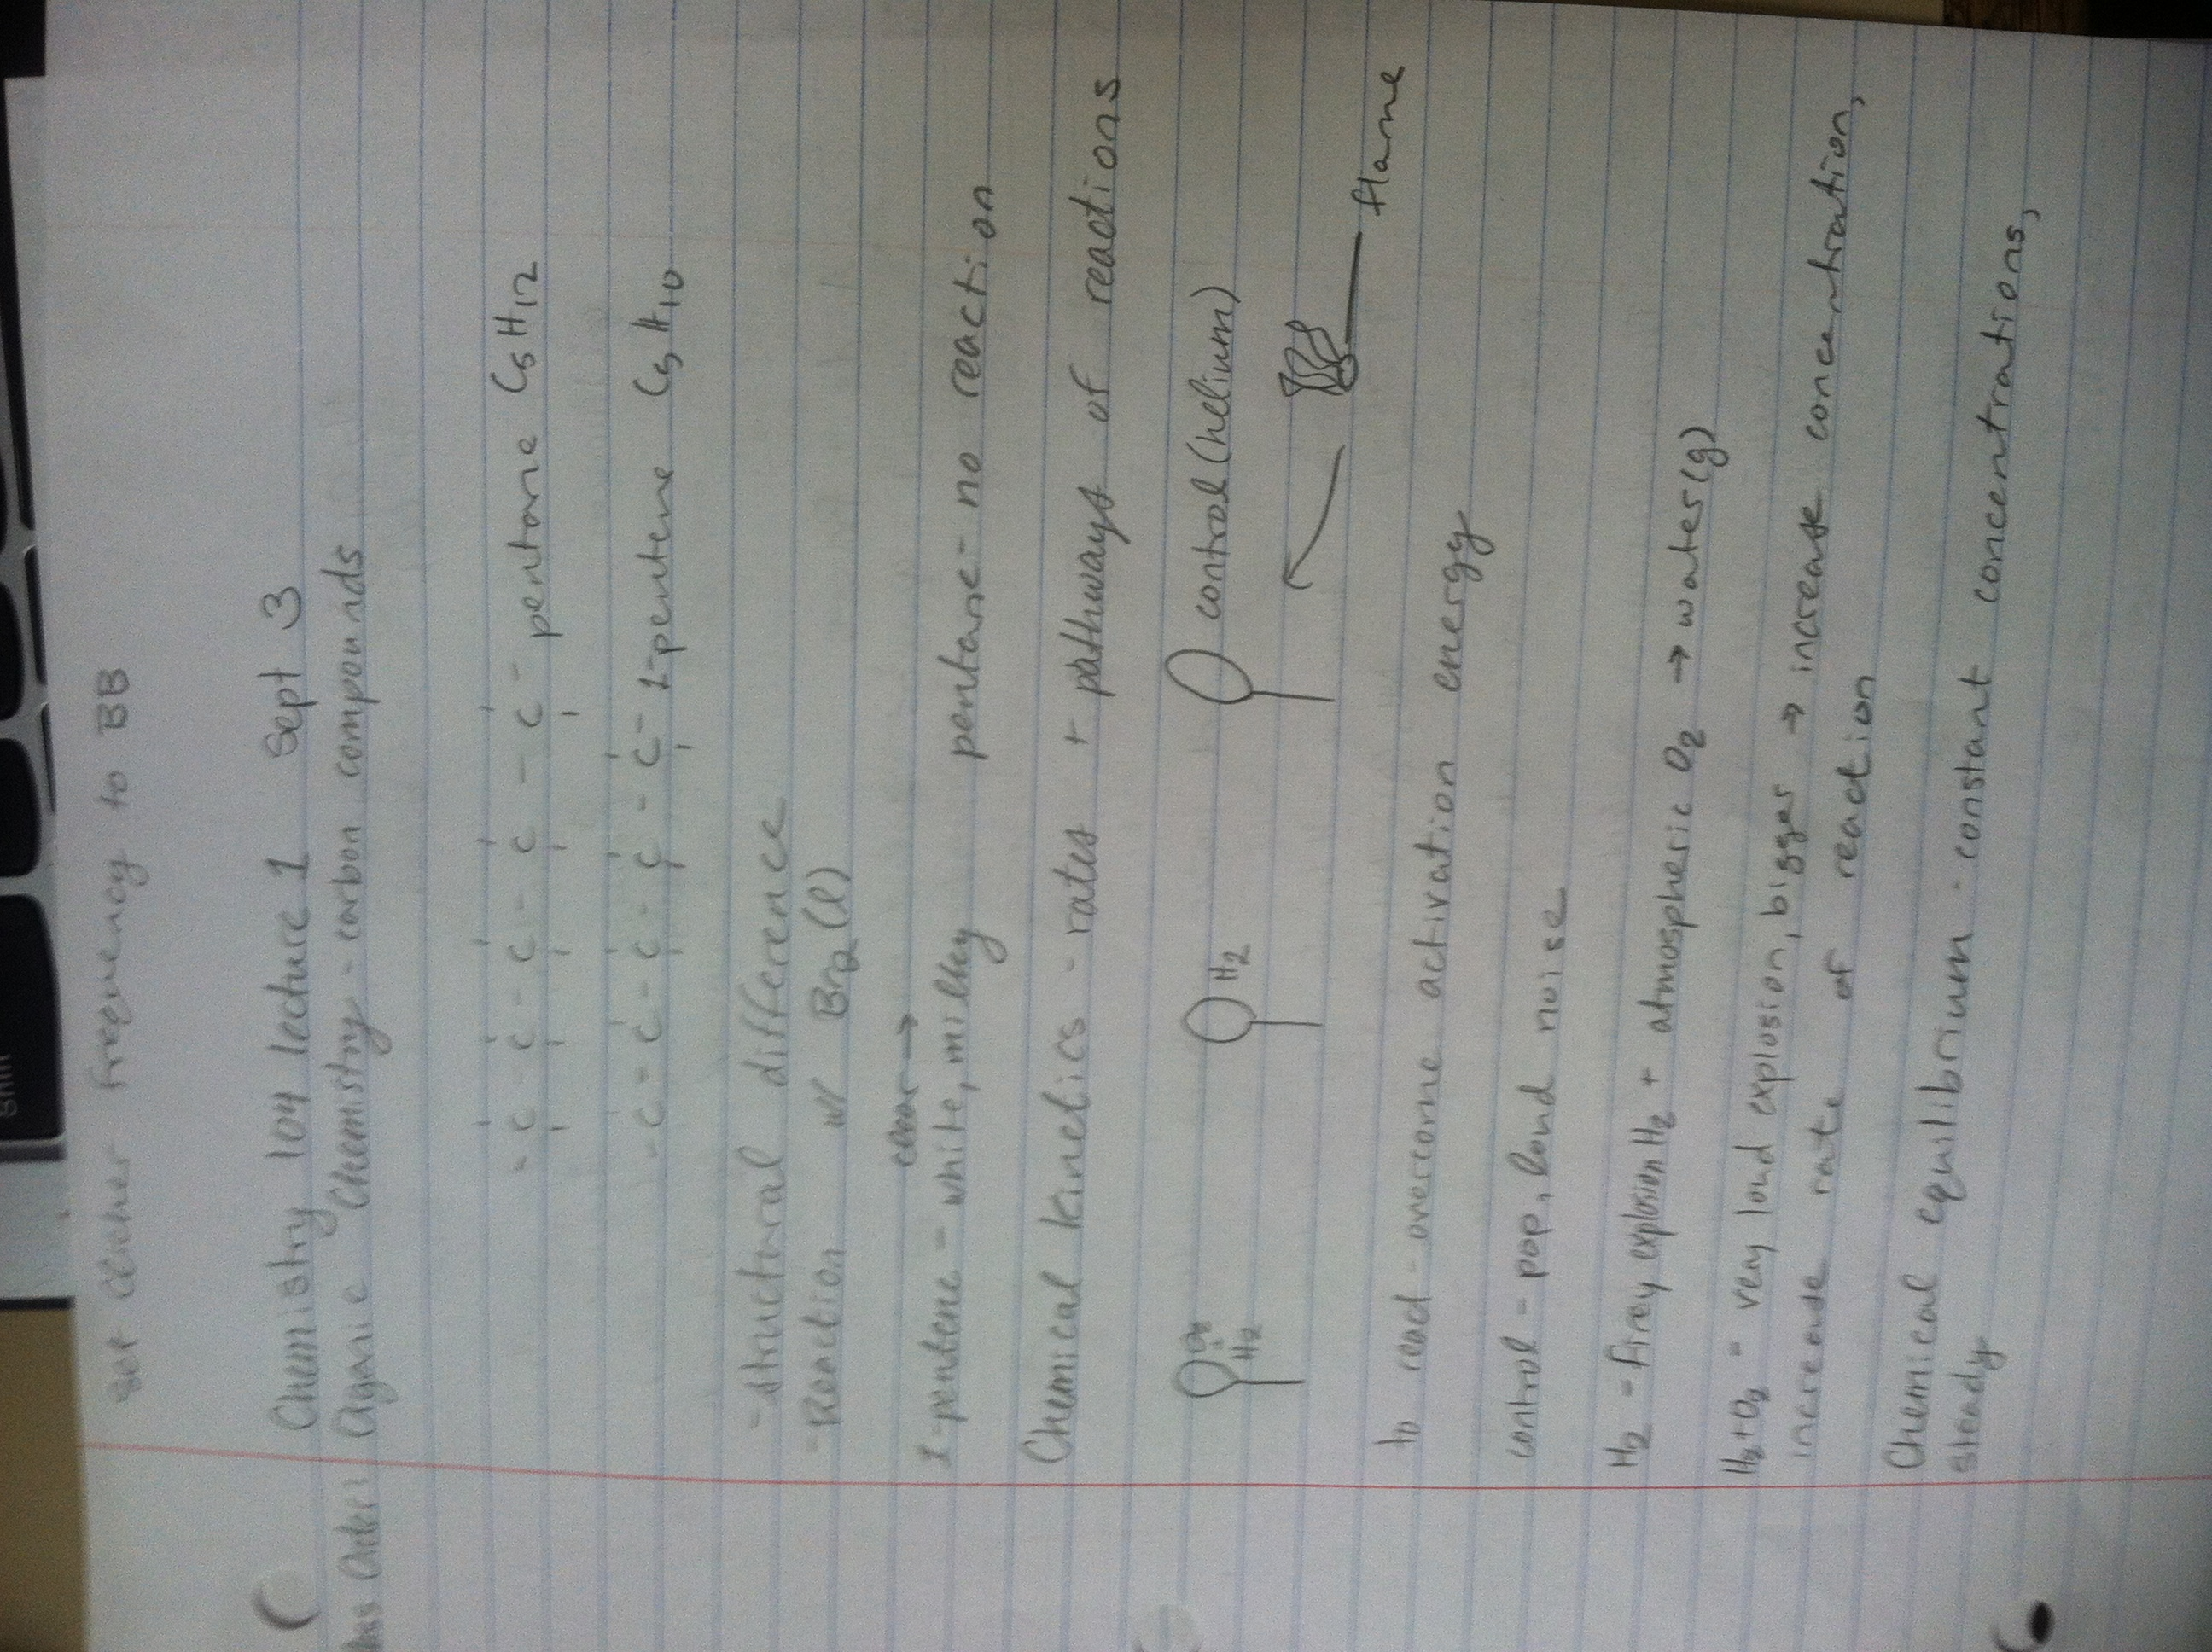 CHEM 104 - Class Notes